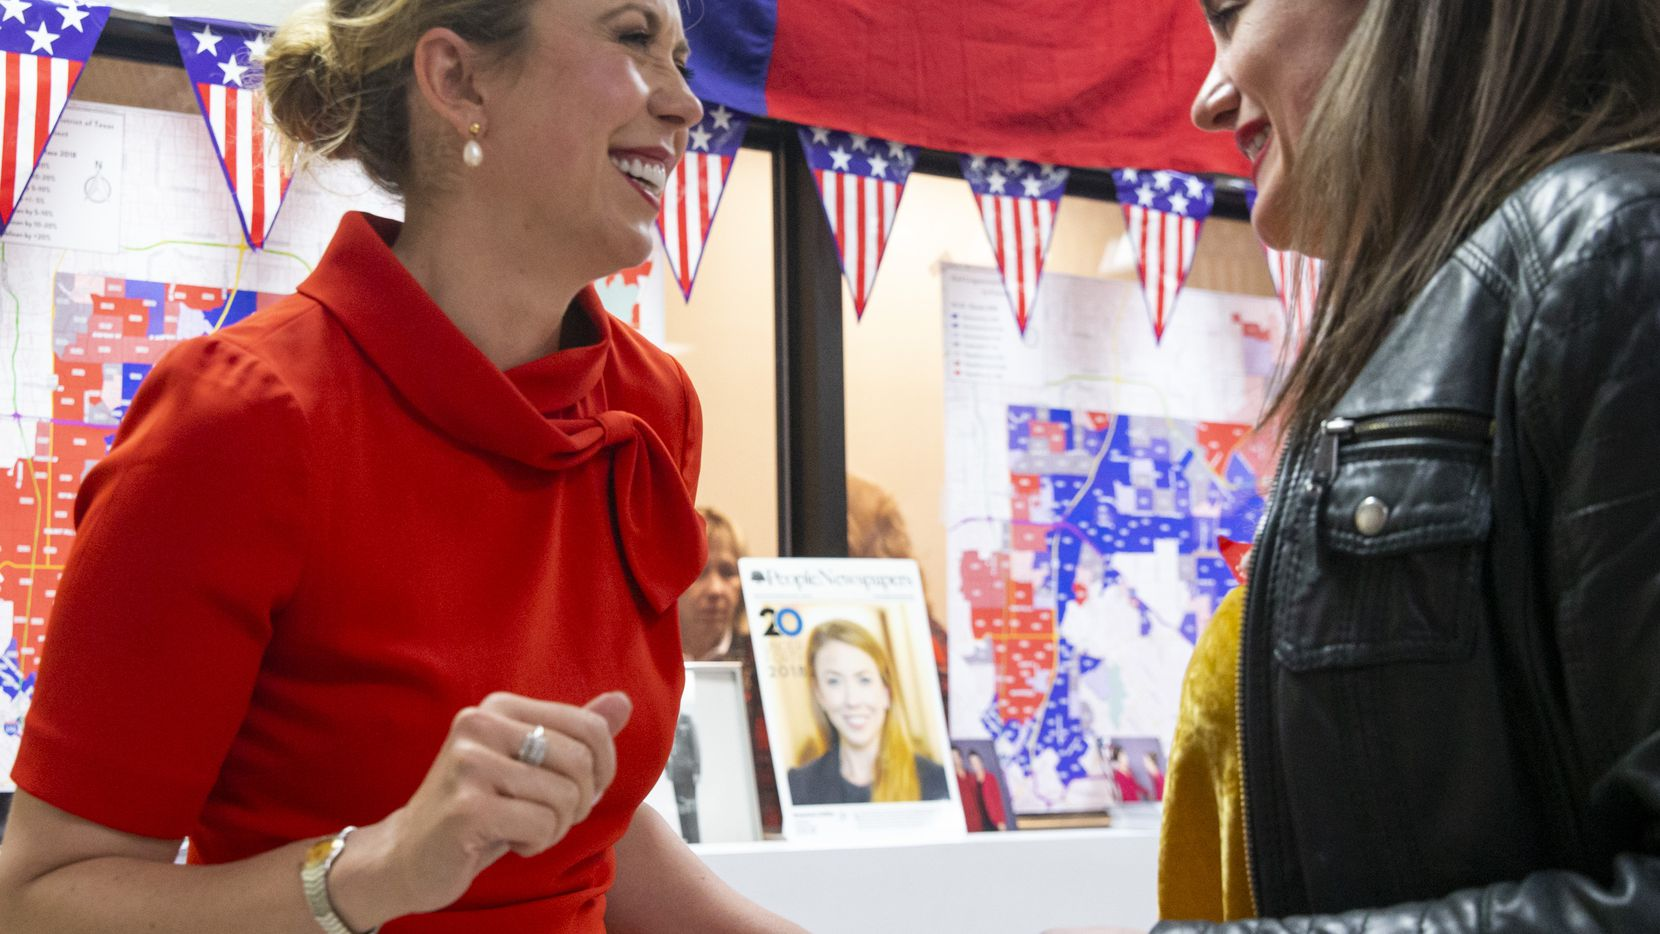 Texas Congressional District 32 candidate Genevieve Collins (left) celebrates with her friend Allison Richie during an election watch party at Collins' campaign headquarters in Dallas on March 3, 2020. Collins faces incumbent Democrat Colin Allred in November.